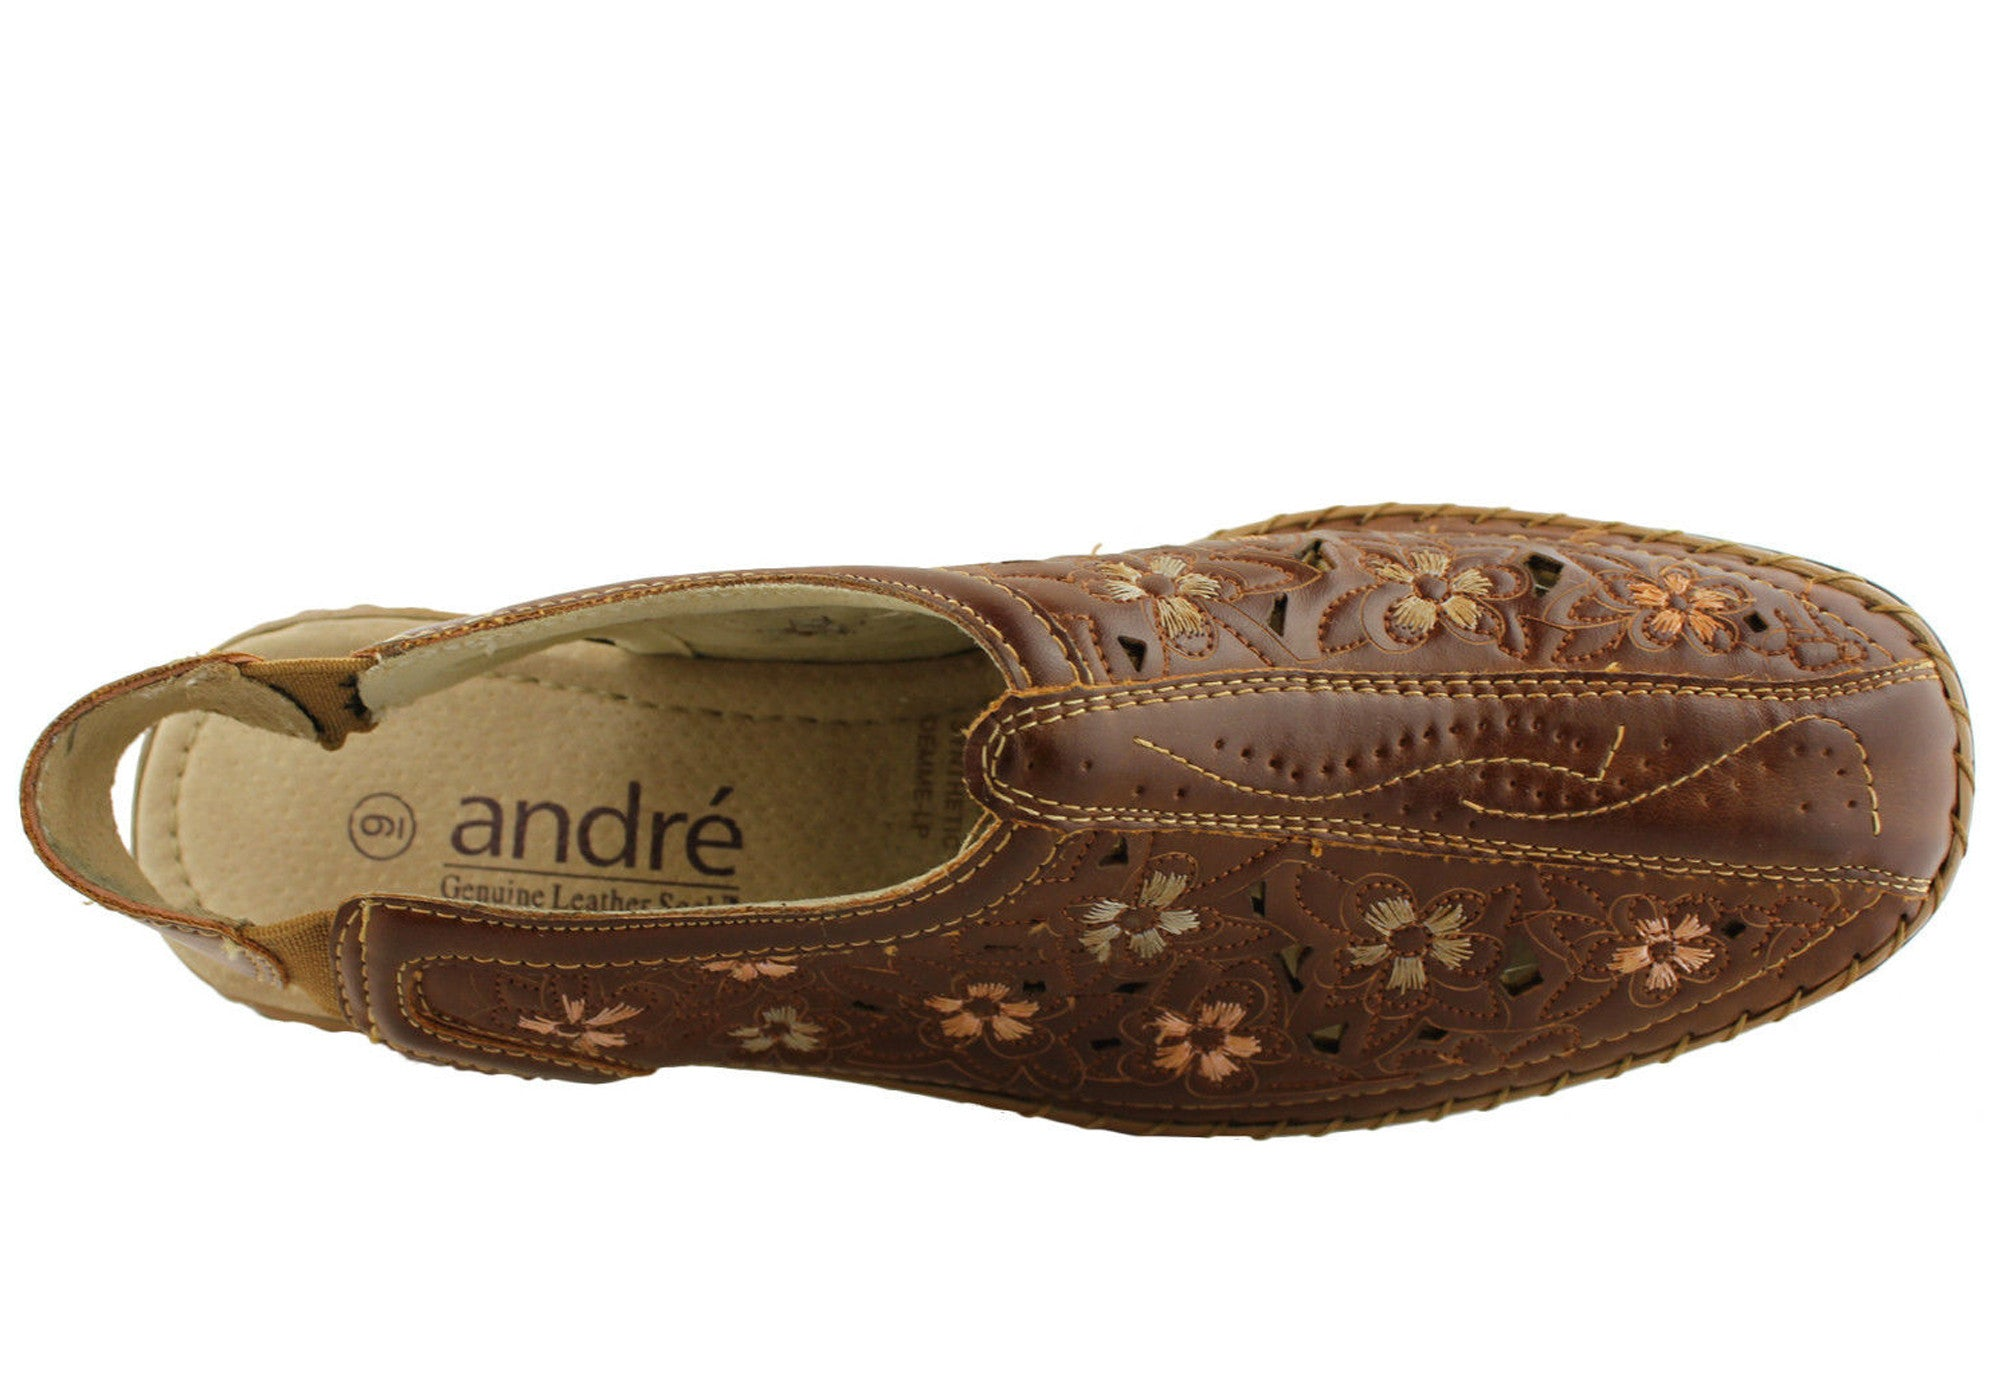 Andre Demme Womens Comfortable Closed Toe Shoes